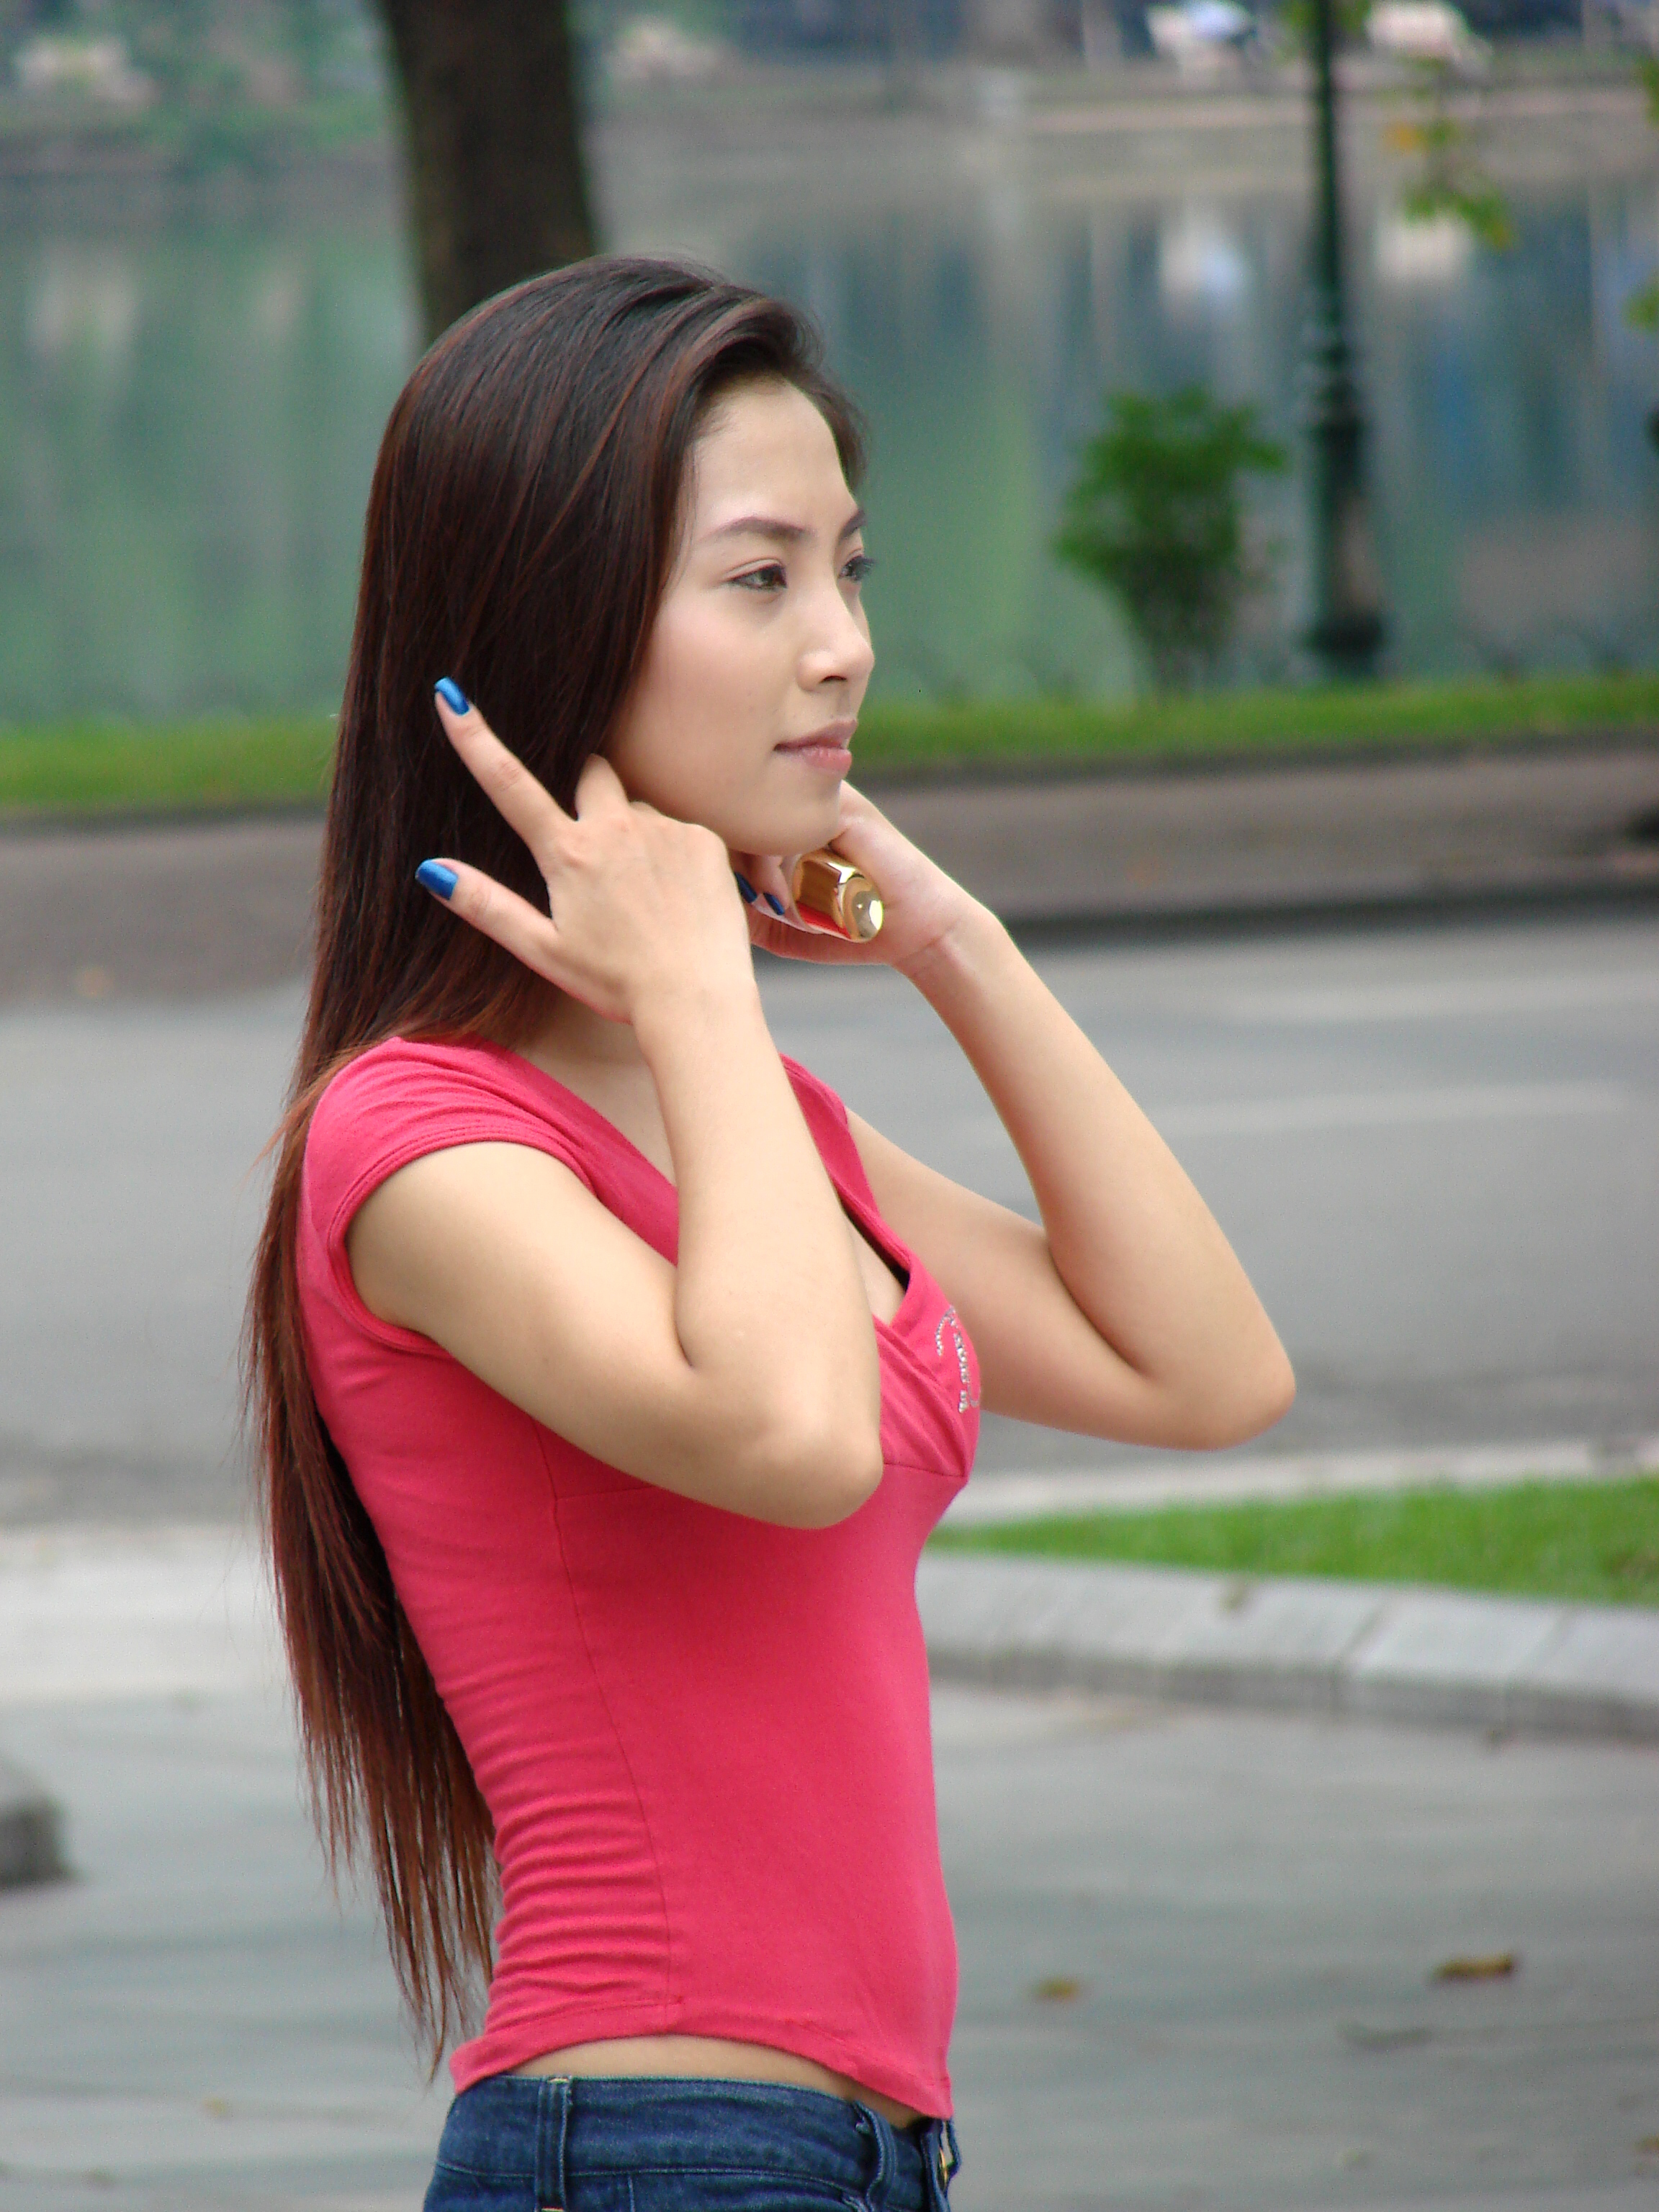 asian single women in mont alto Live chat with beautiful girls from latina at latamdatecom.